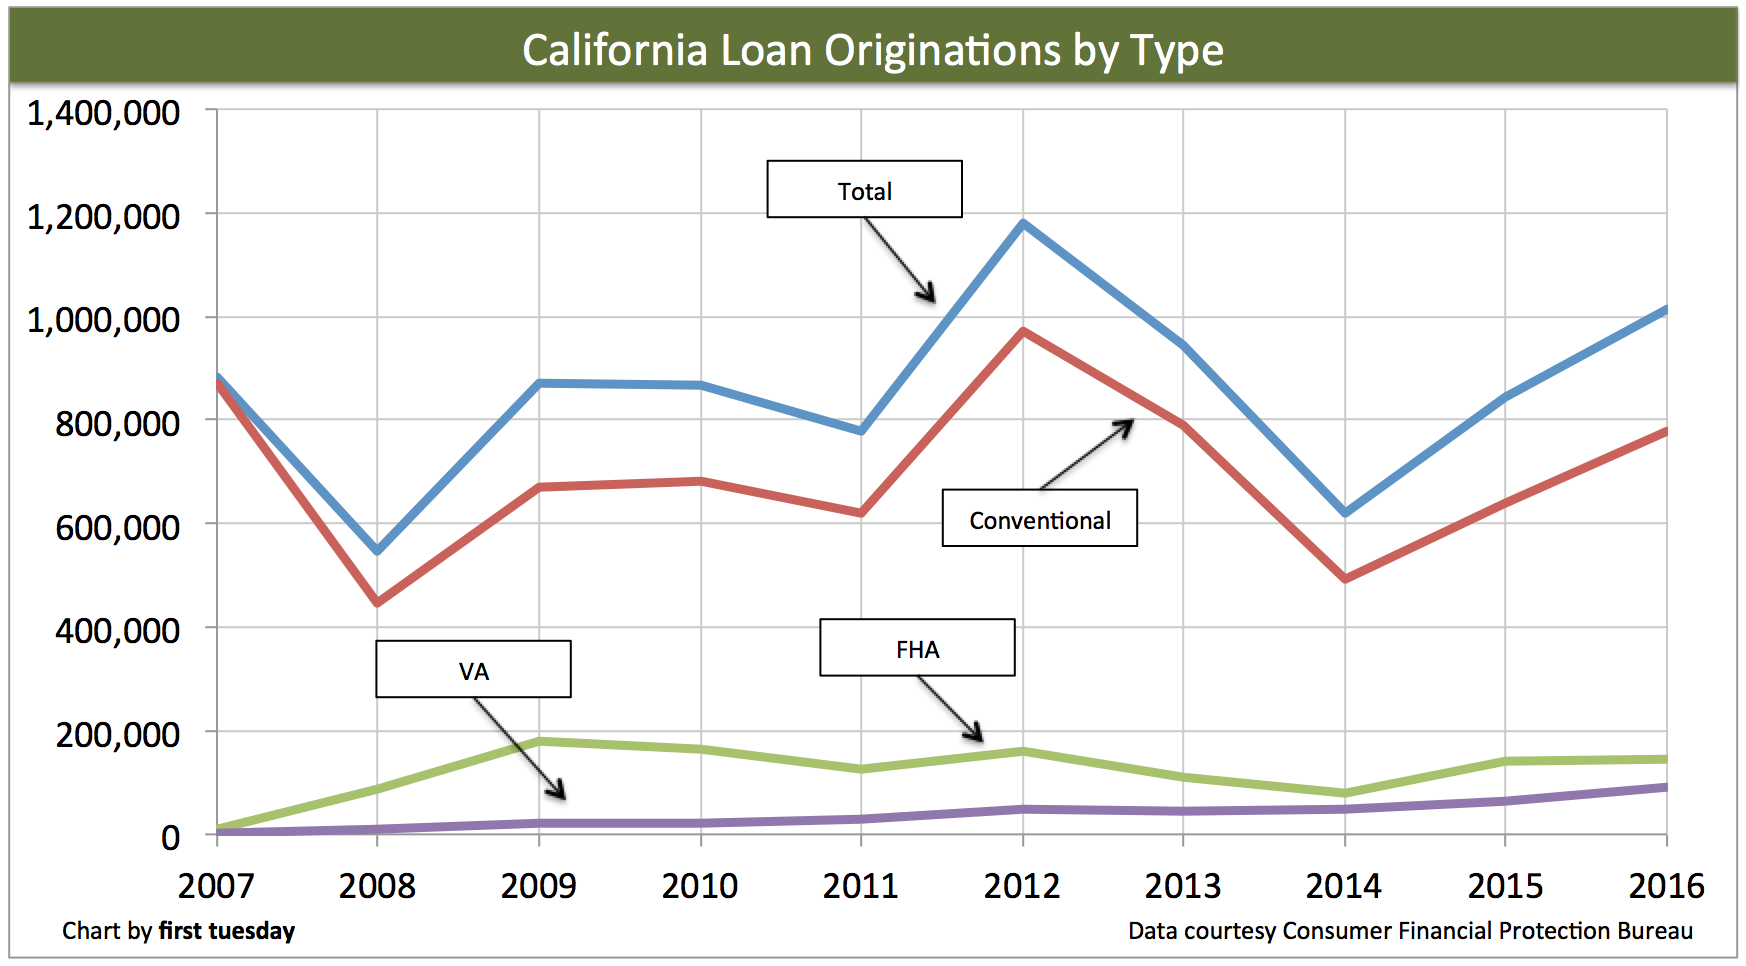 ca-loans-origination-type-2016